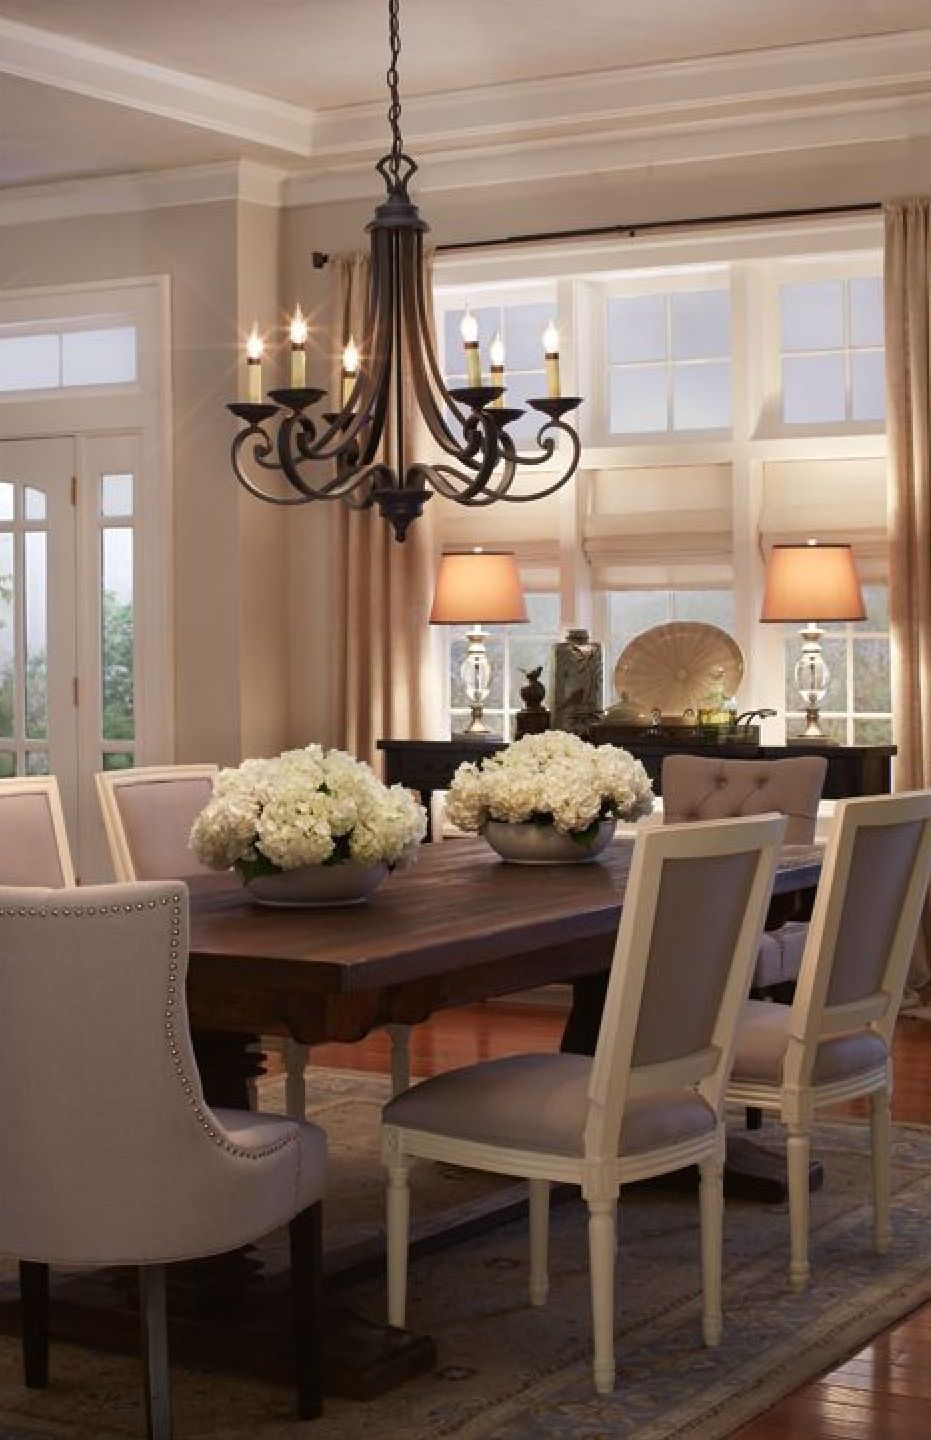 Elegant Dining Room Chandeliers Impressive Diningroom Tables Chairs Chandeliers Pendant Light Ceiling Design Inspiration